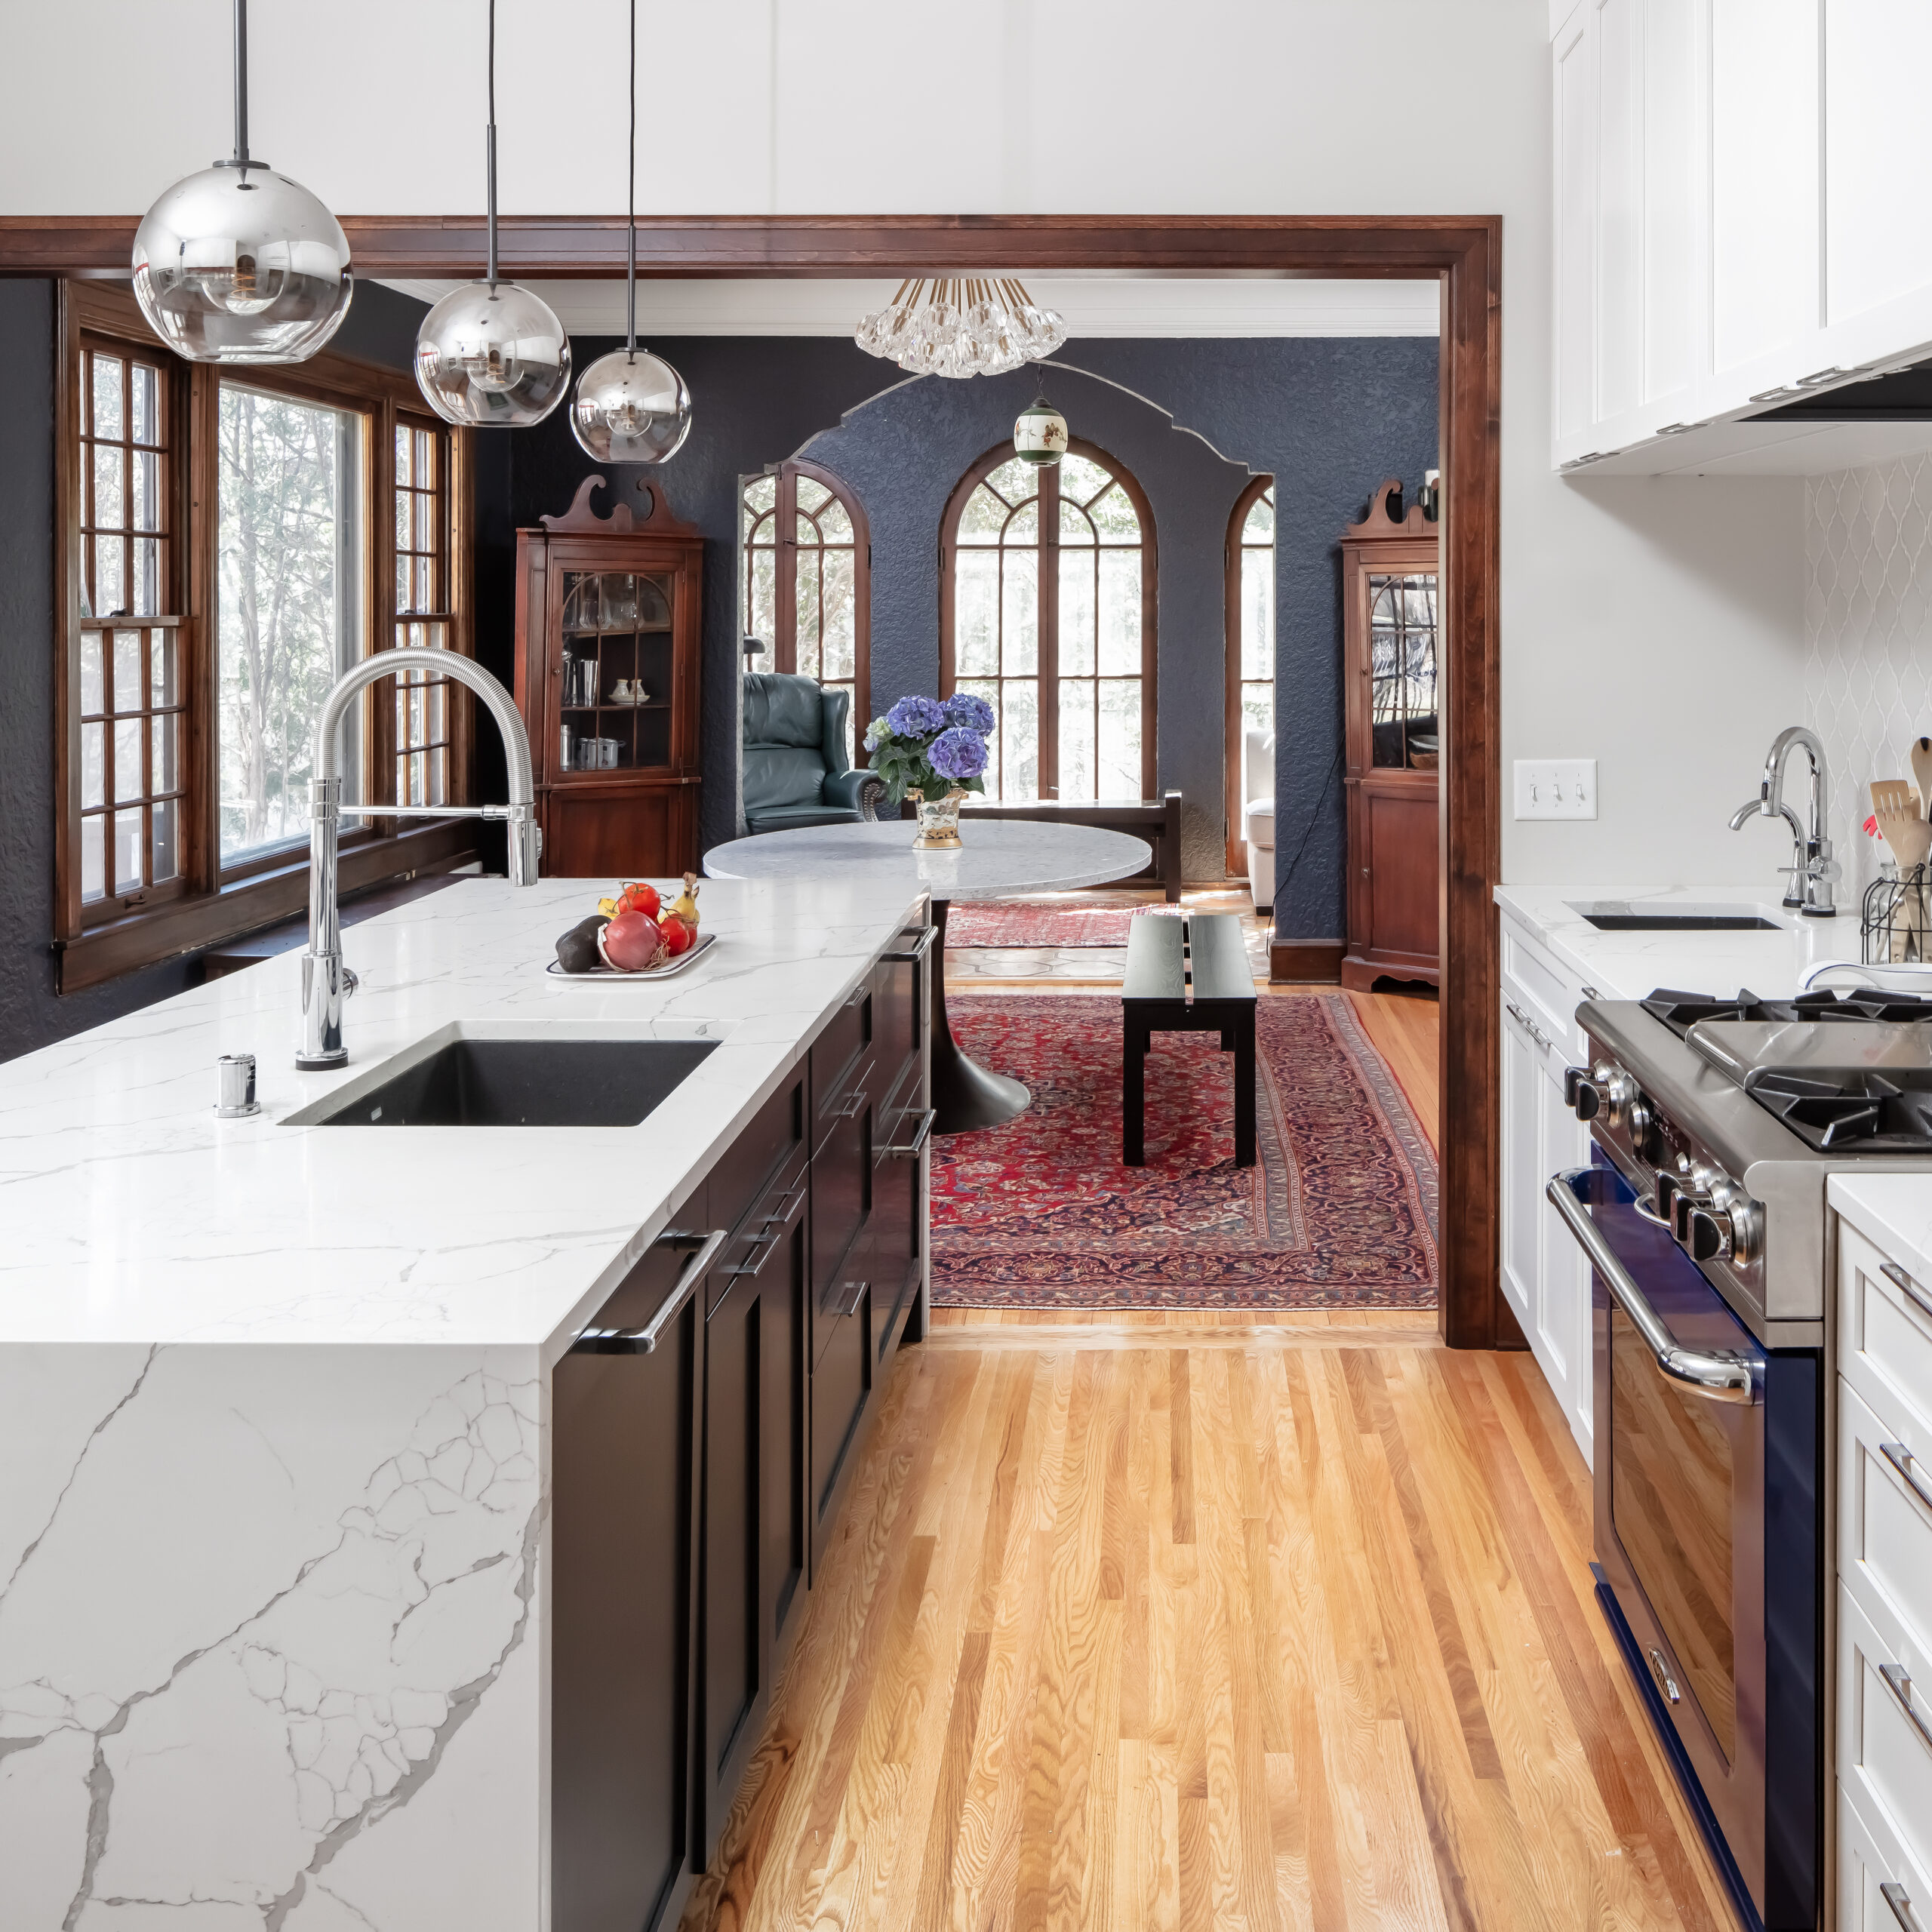 Home Design Trends & Key Solutions for 2021